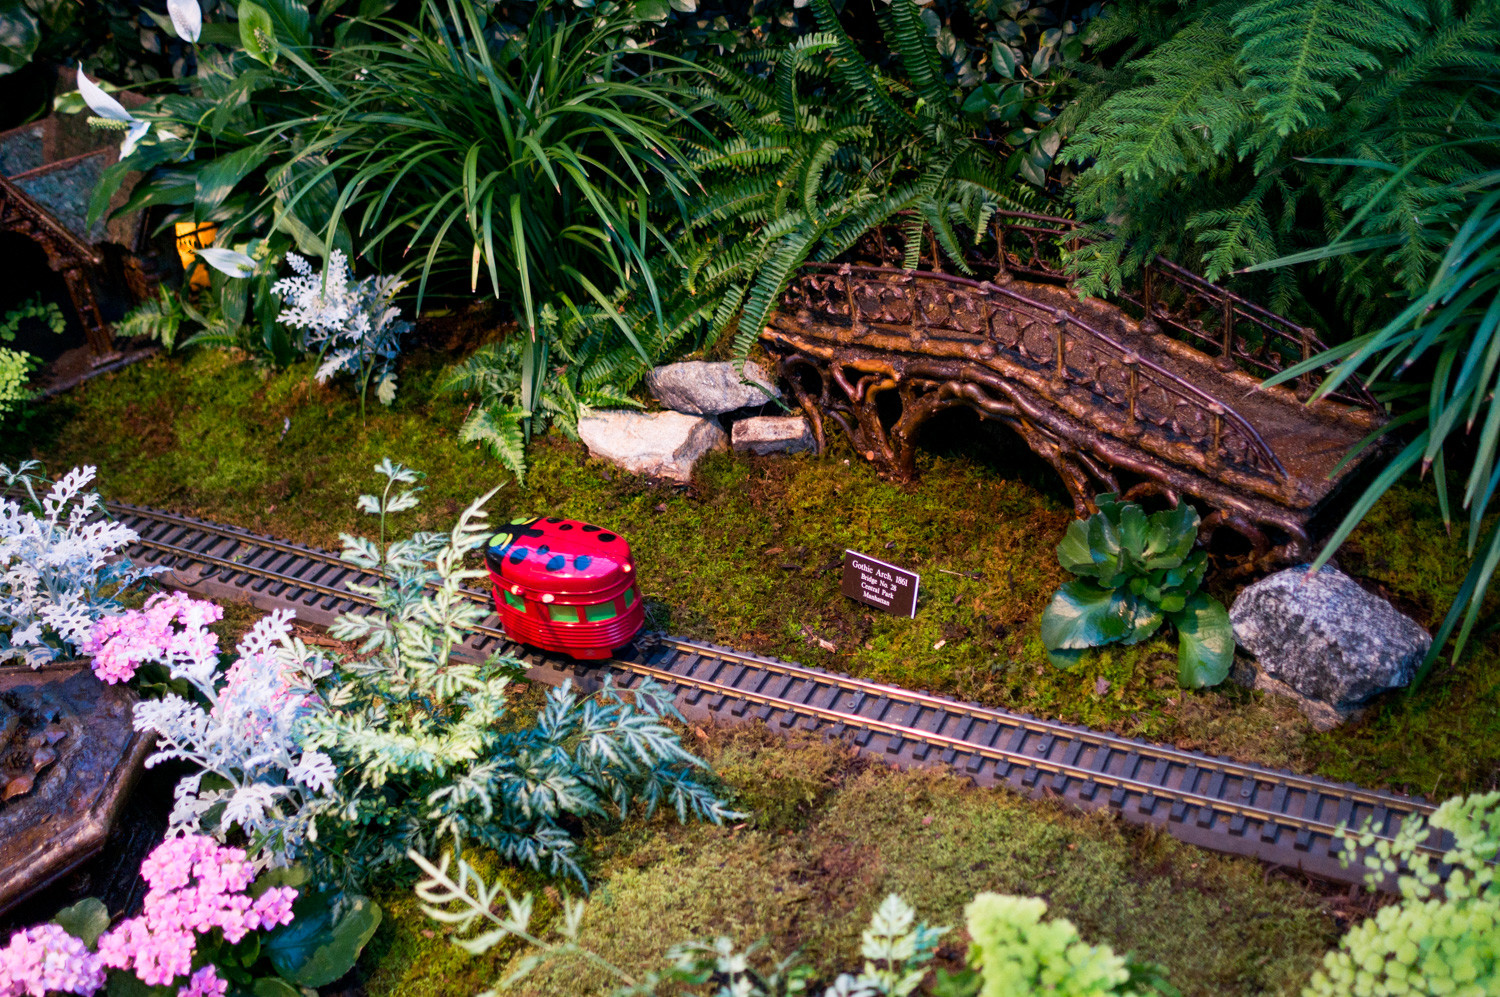 A ladybug train car whizzes by a replica of the Gothic Arch.